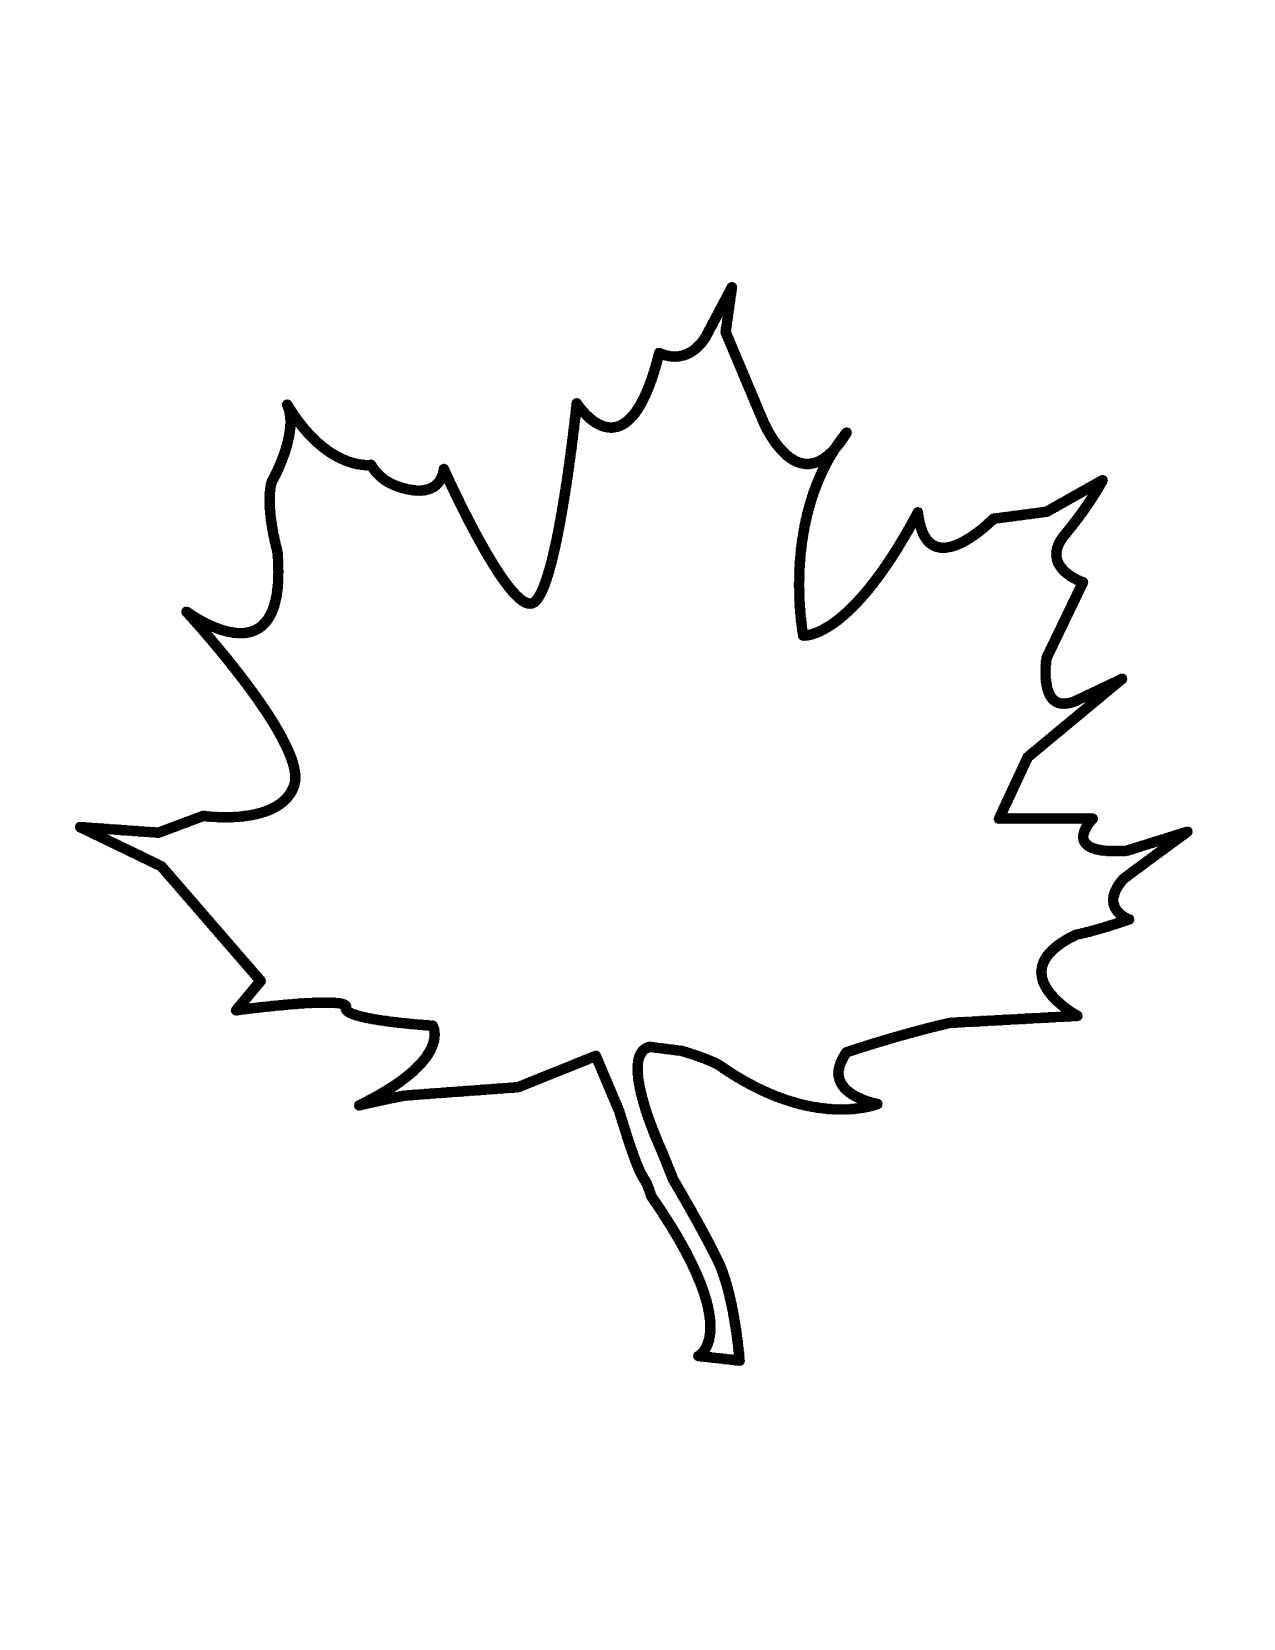 Leaf Outline Clip Art Black And White